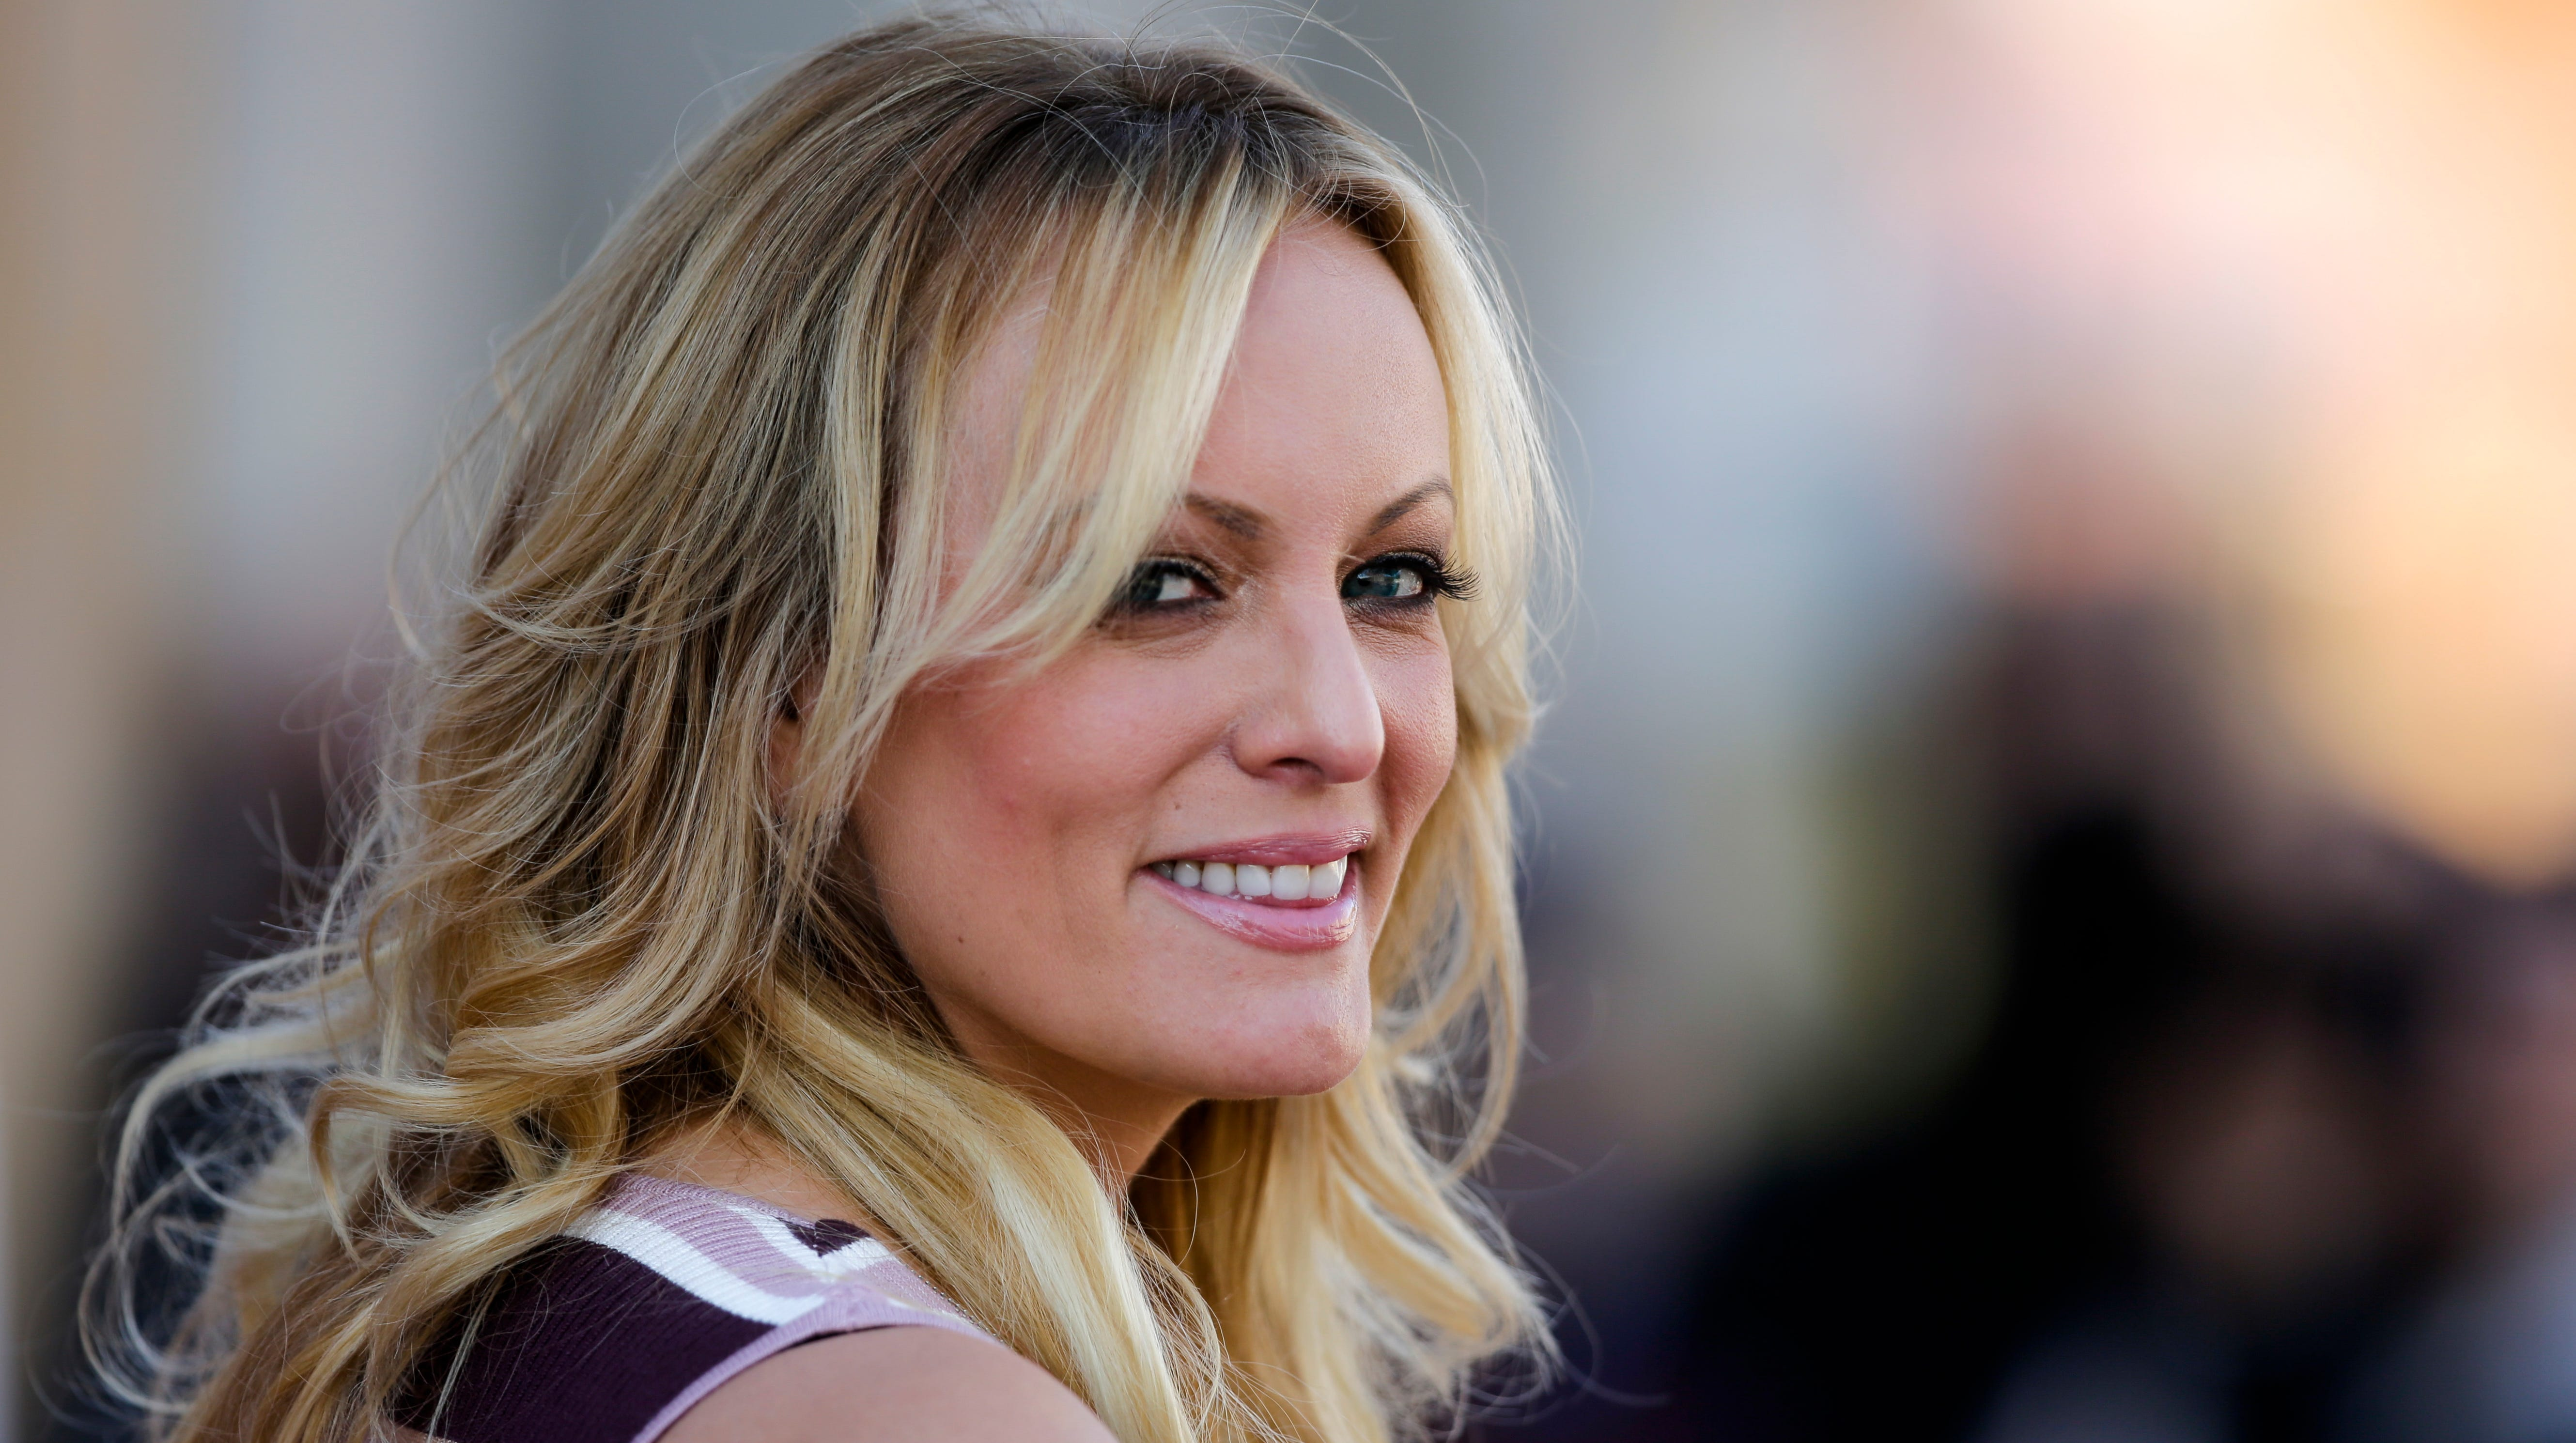 Porn's Stormy Daniels to perform at Deja Vu Showgirls; she's strip club chain's new spokesperson